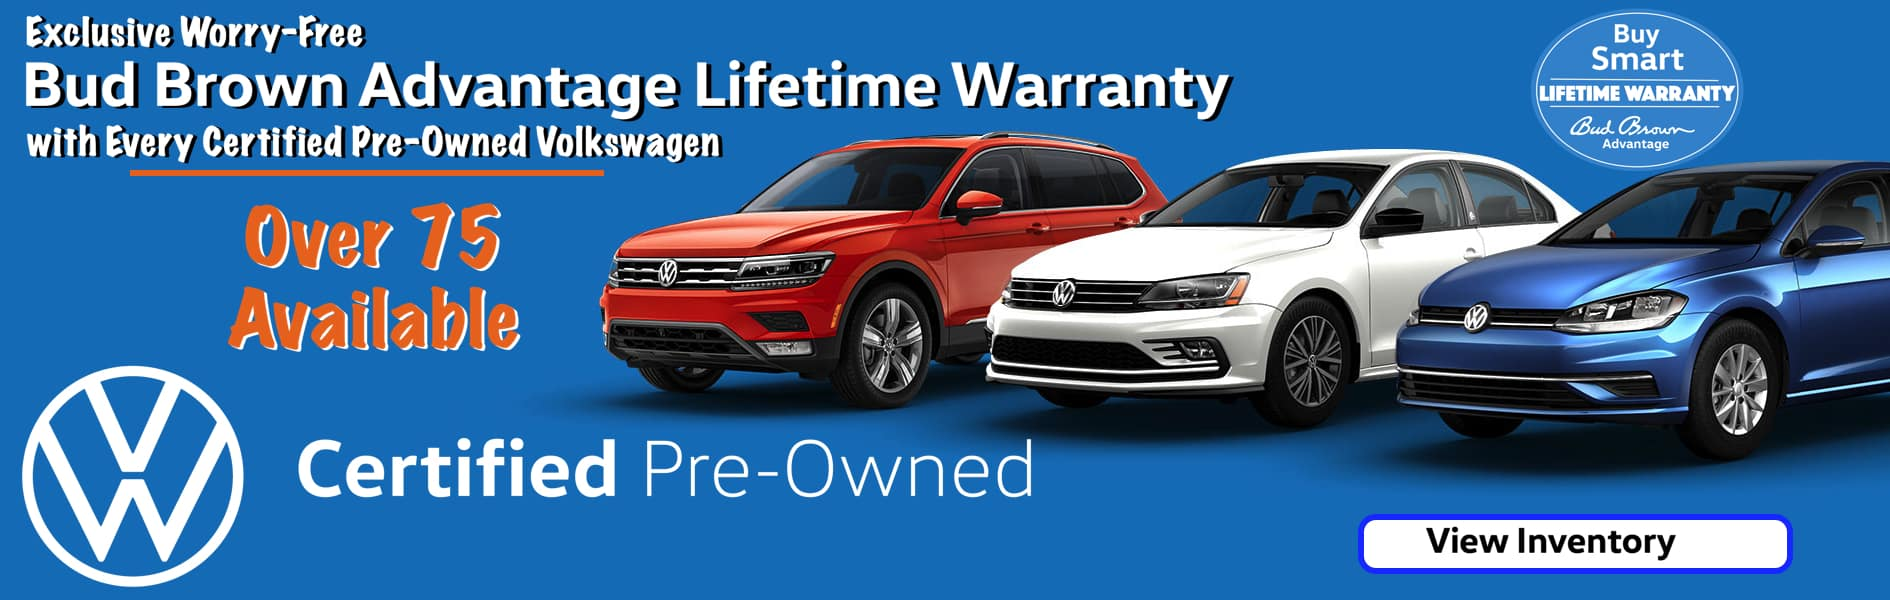 Choose from Over 75 Certified Pre-Owned with Bud Brown Lifetime Warranty